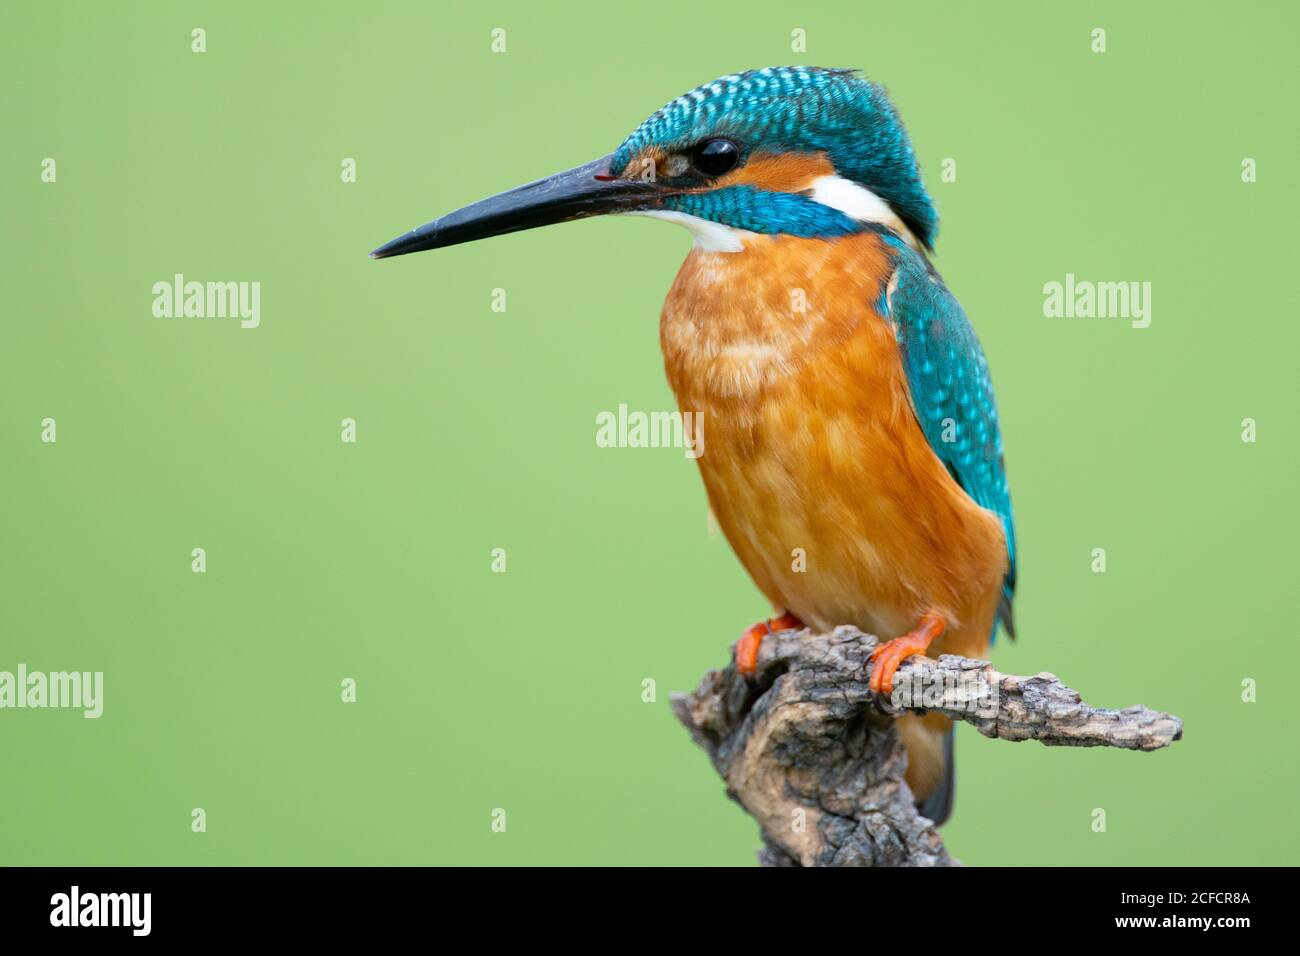 Closeup Kingfisher with orange feathers on chest and blue feathers on head and back sitting on branch isolated on green background Stock Photo